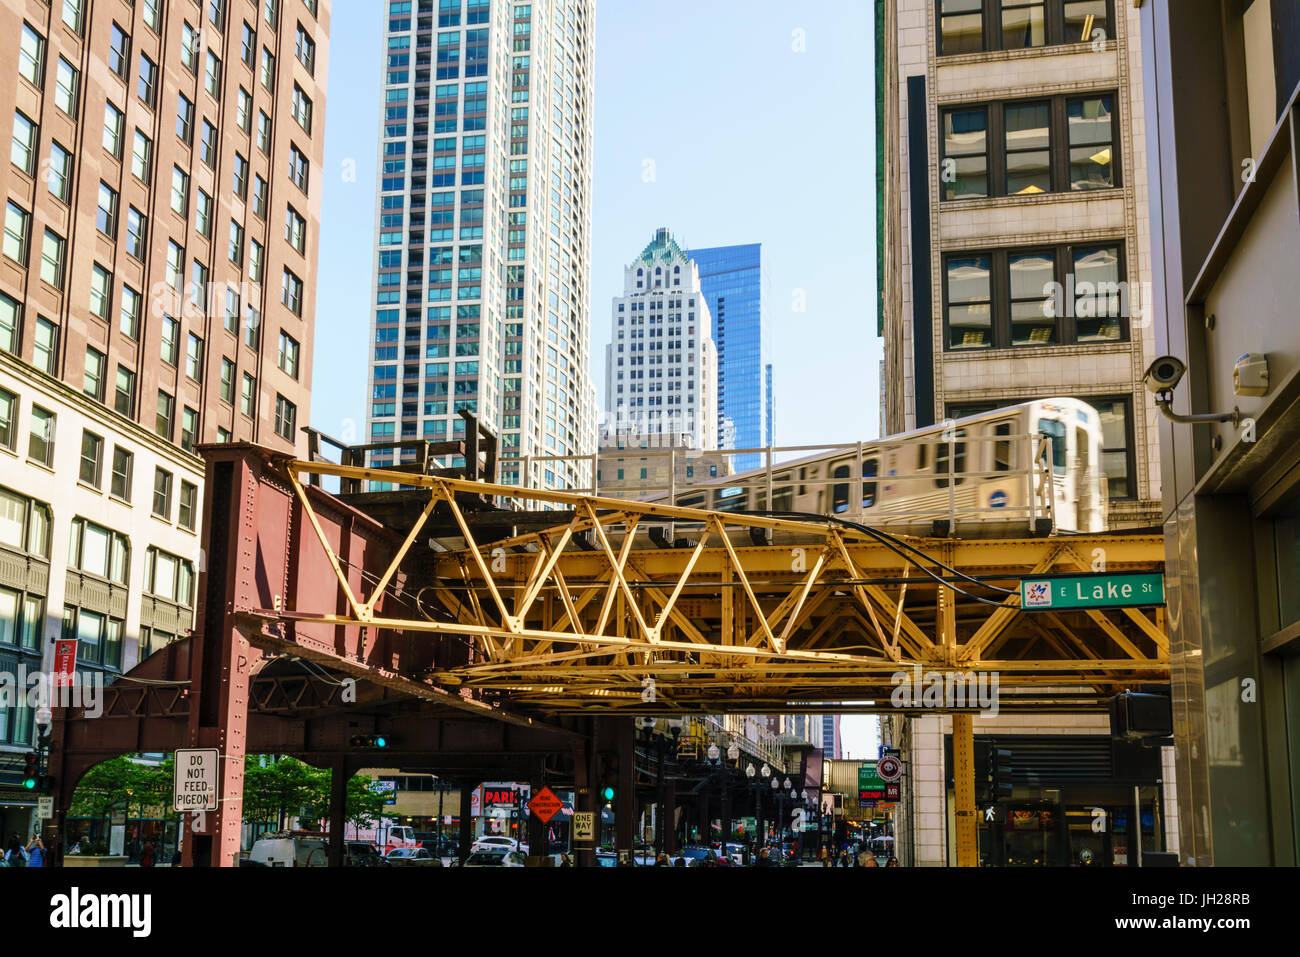 CTA train on the Loop track which runs above ground in downtown Chicago, Illinois, United States of America, North - Stock Image